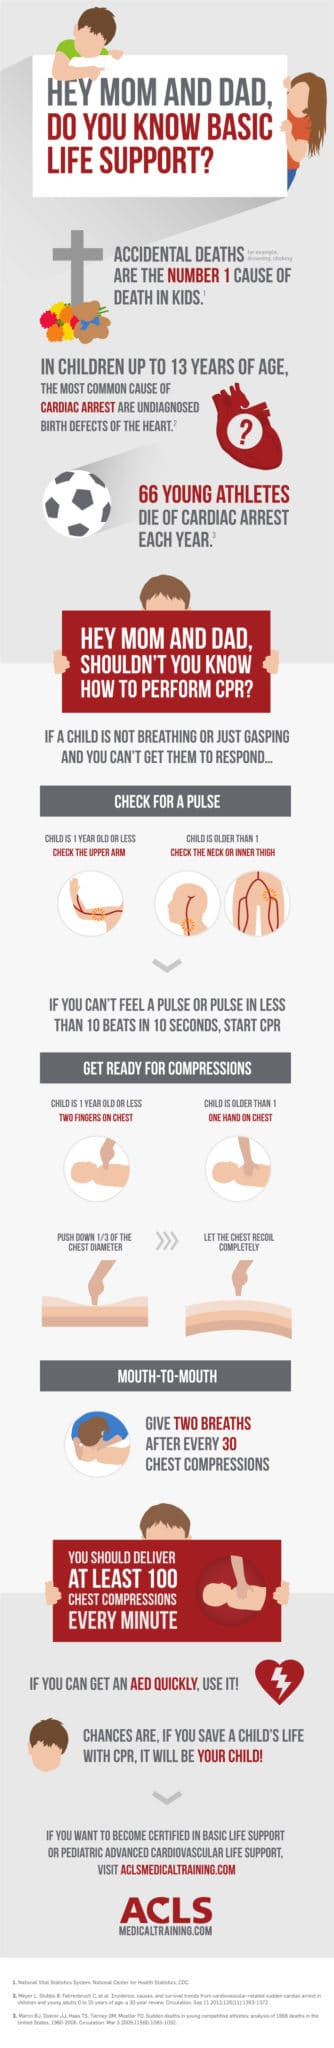 [Infographic] Single Moms Can Learn CPR the Easy Way